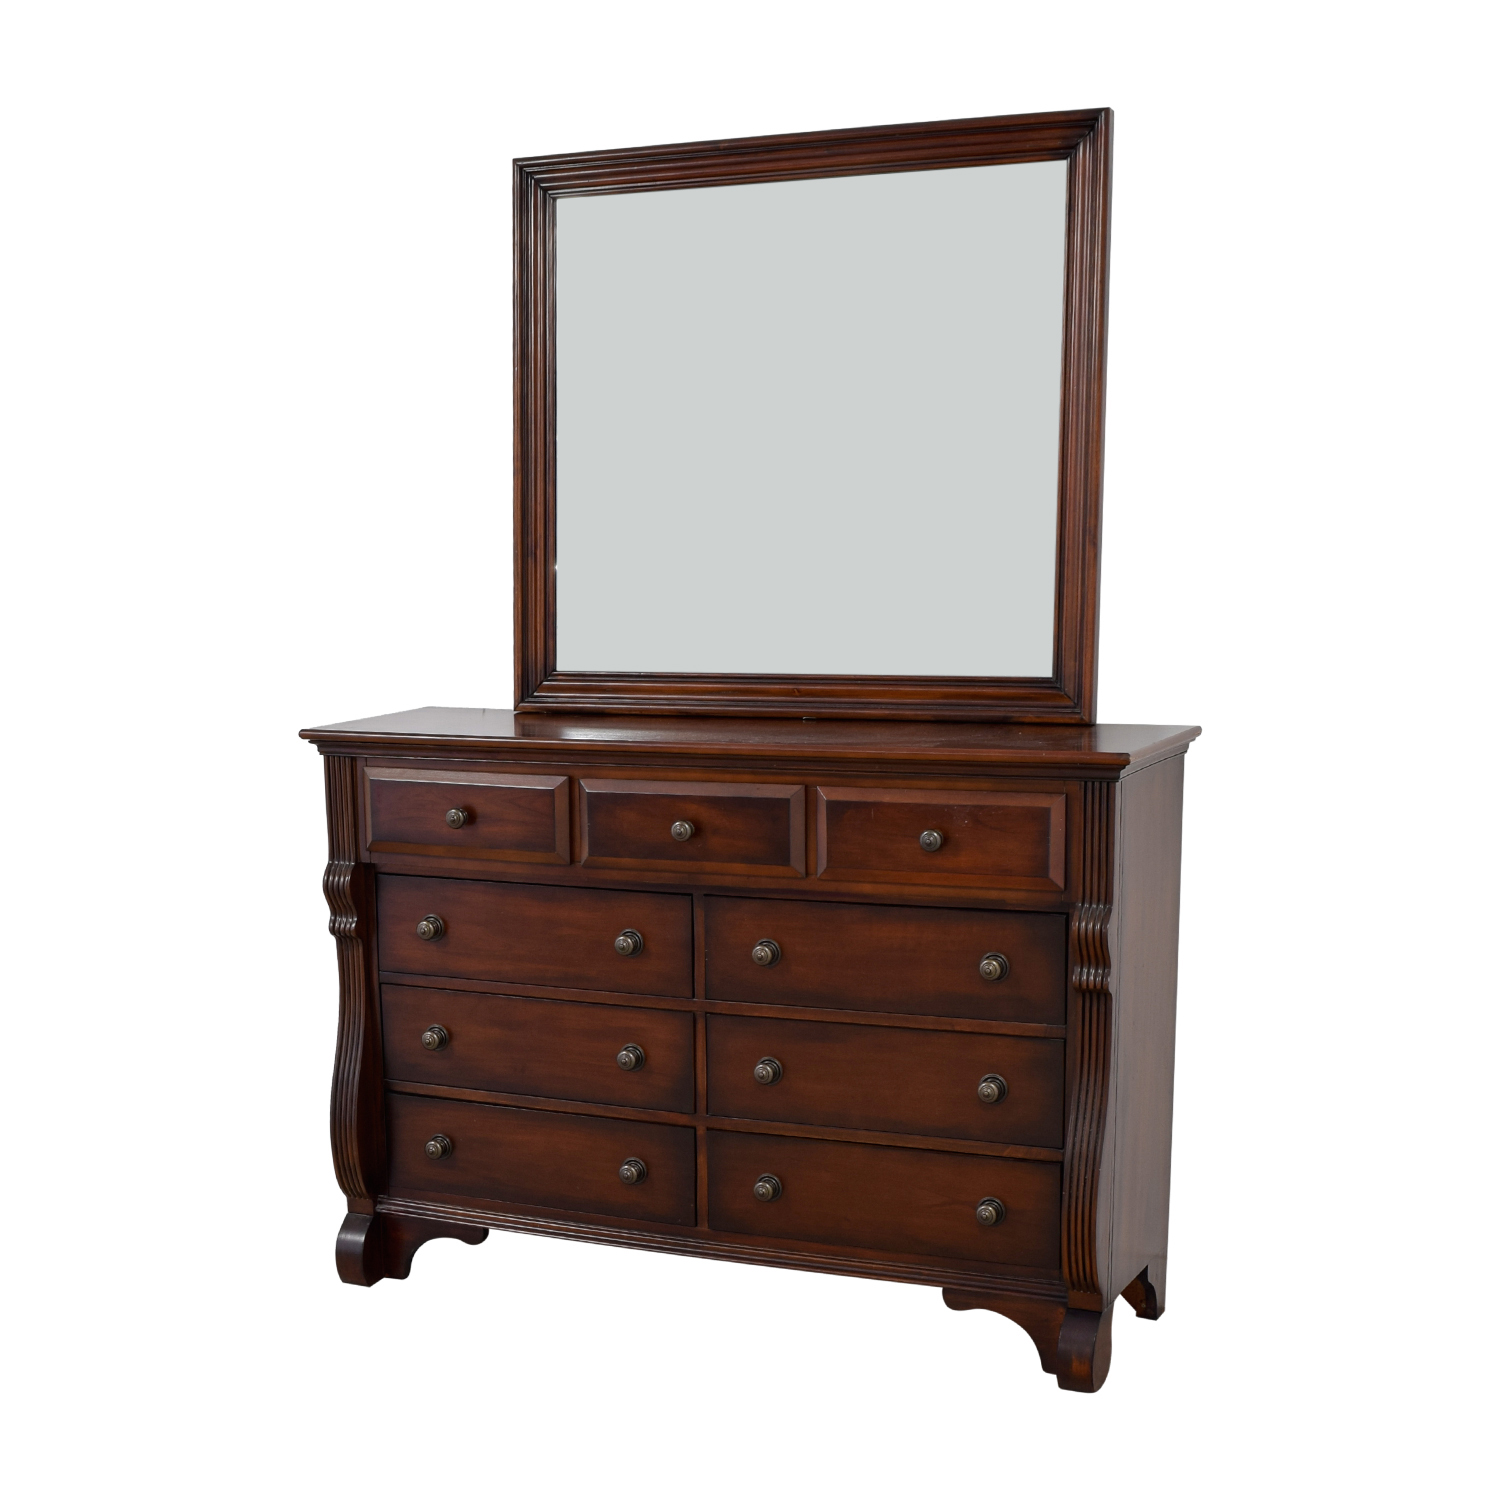 buy Bob's Furniture Bob's Furniture Nine-Drawer Dresser with Mirror online